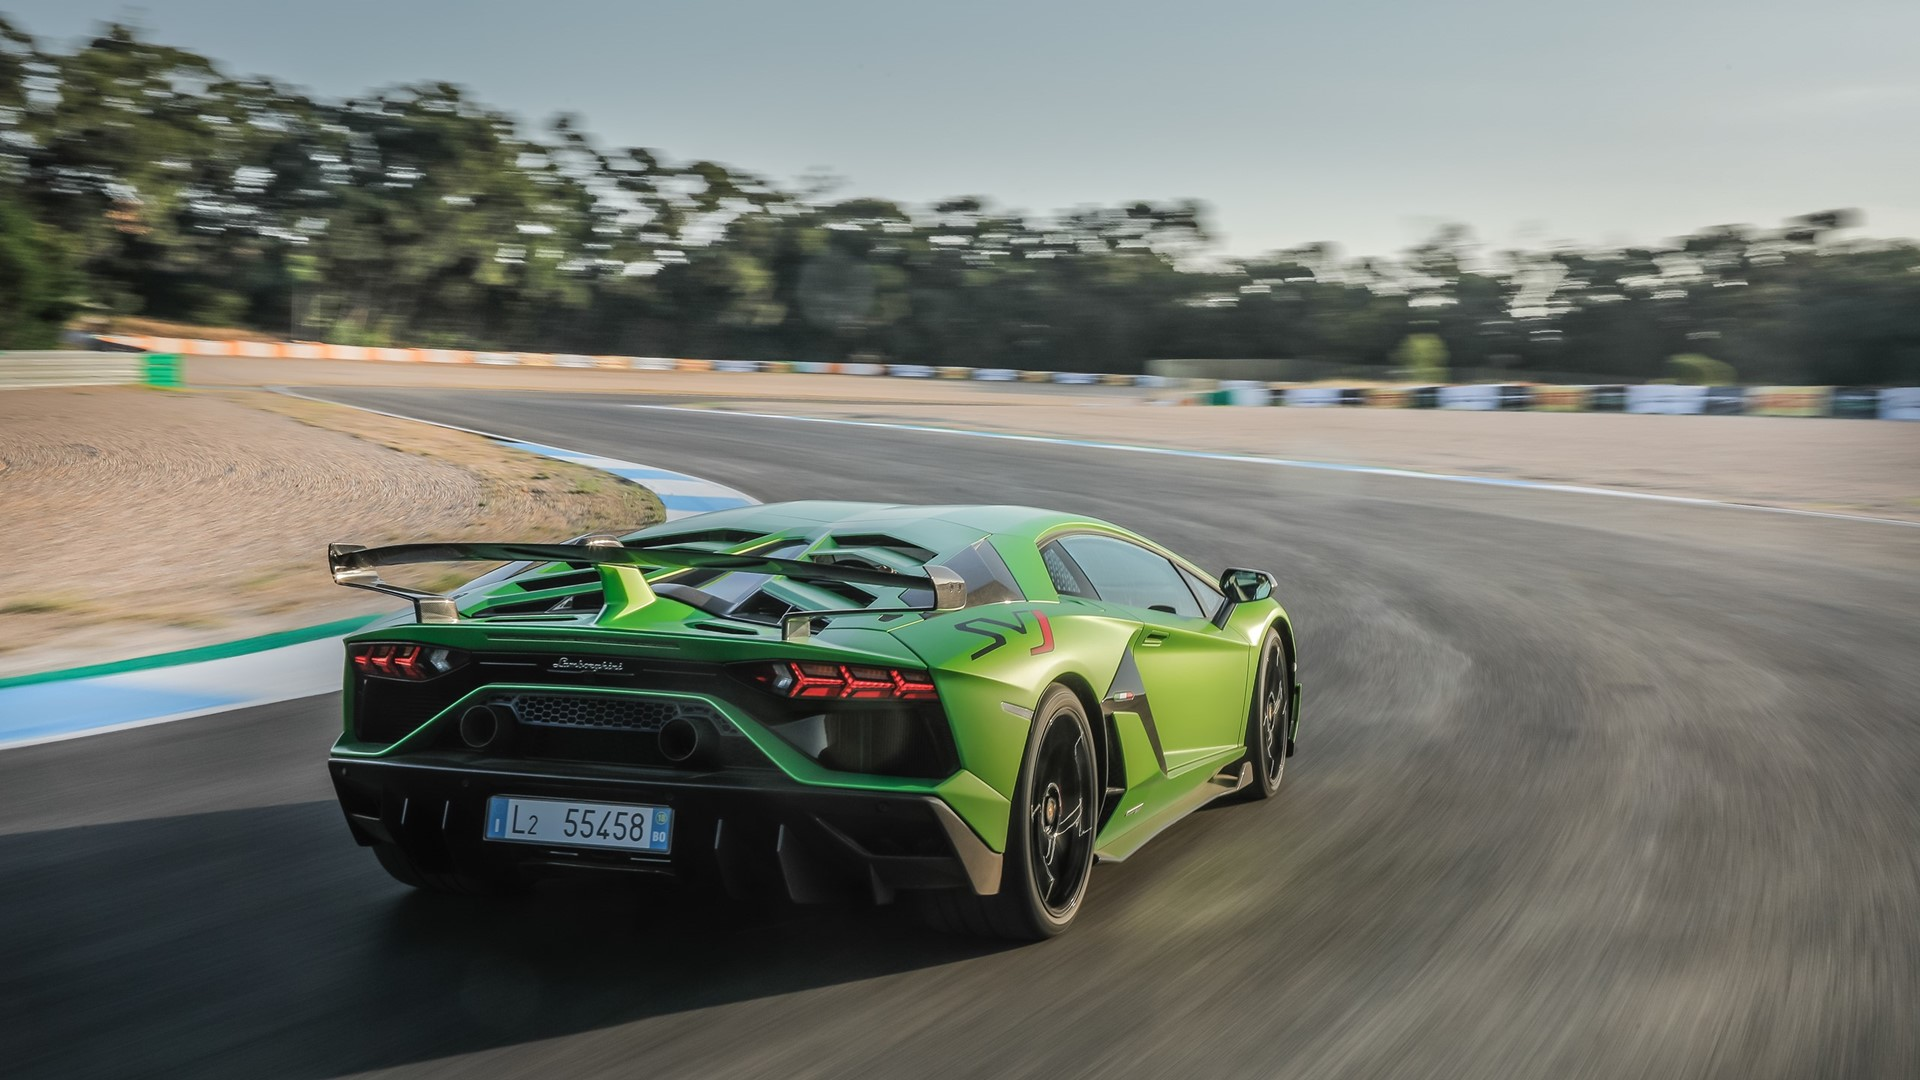 New production record: Automobili Lamborghini celebrates the 10,000th Aventador - Image 4